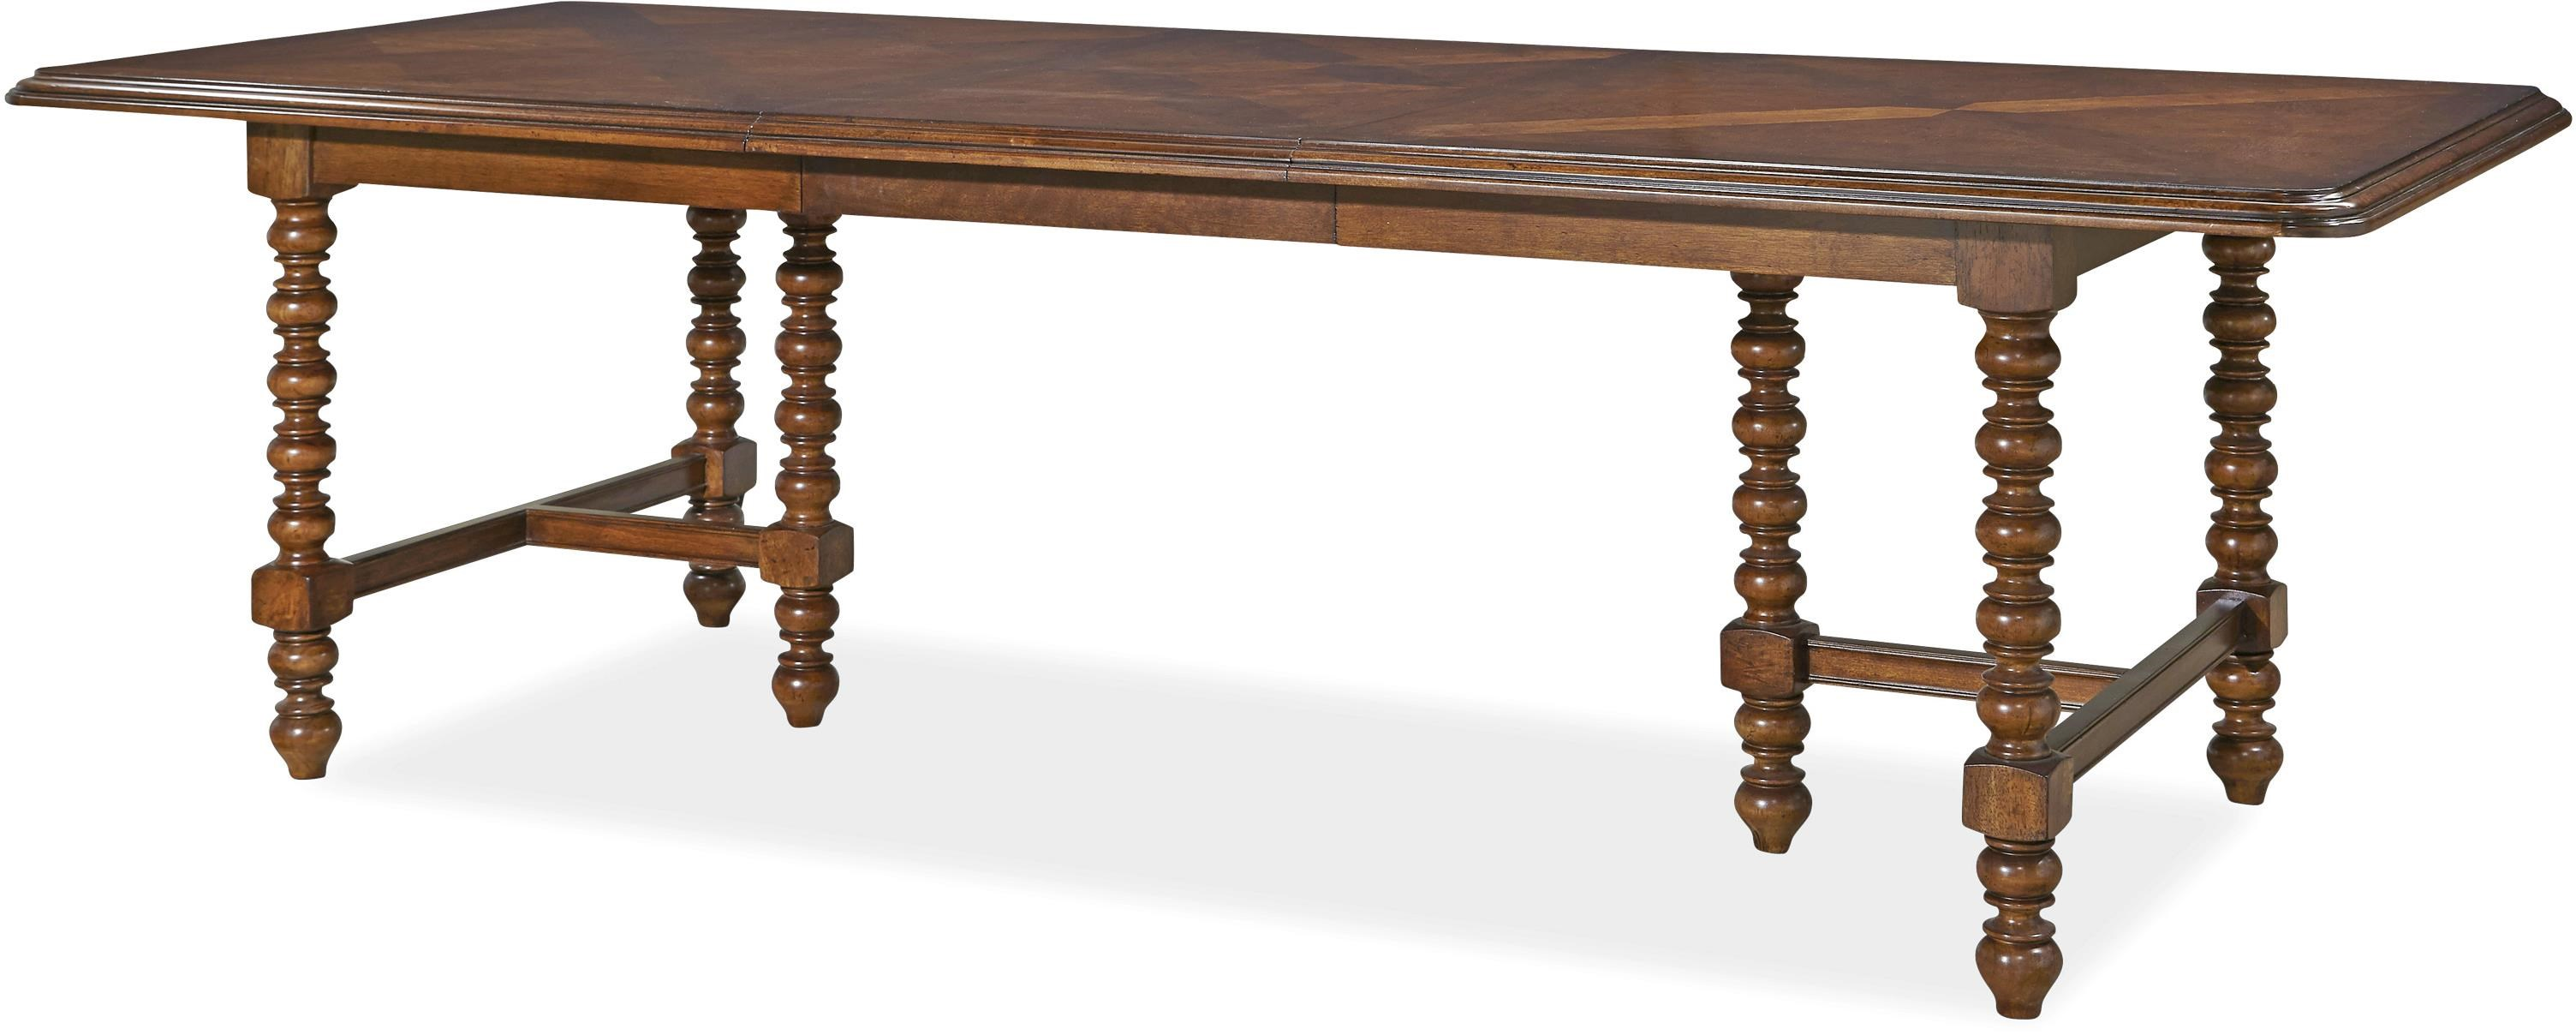 Paula Deen Darling Darling Double Pedestal Dining Table   Morris Home    Dining Room Table